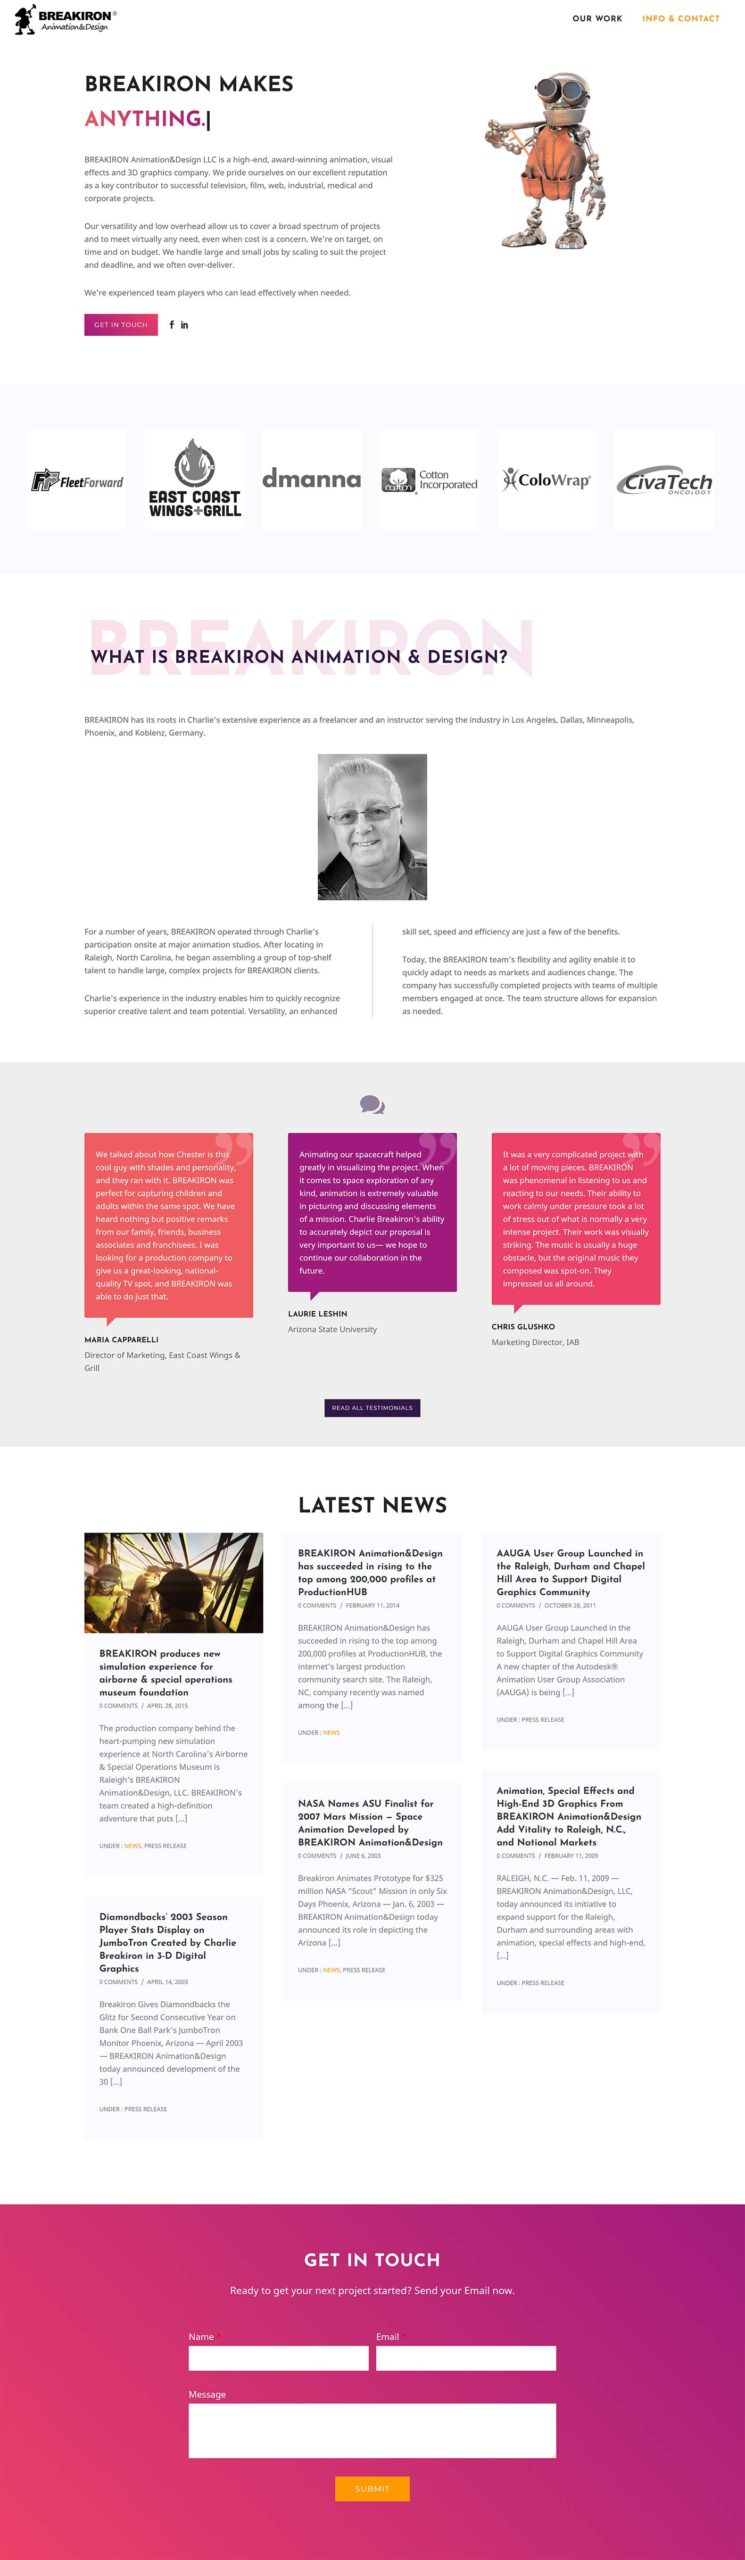 BREAKIRON Animation&Design main contact page